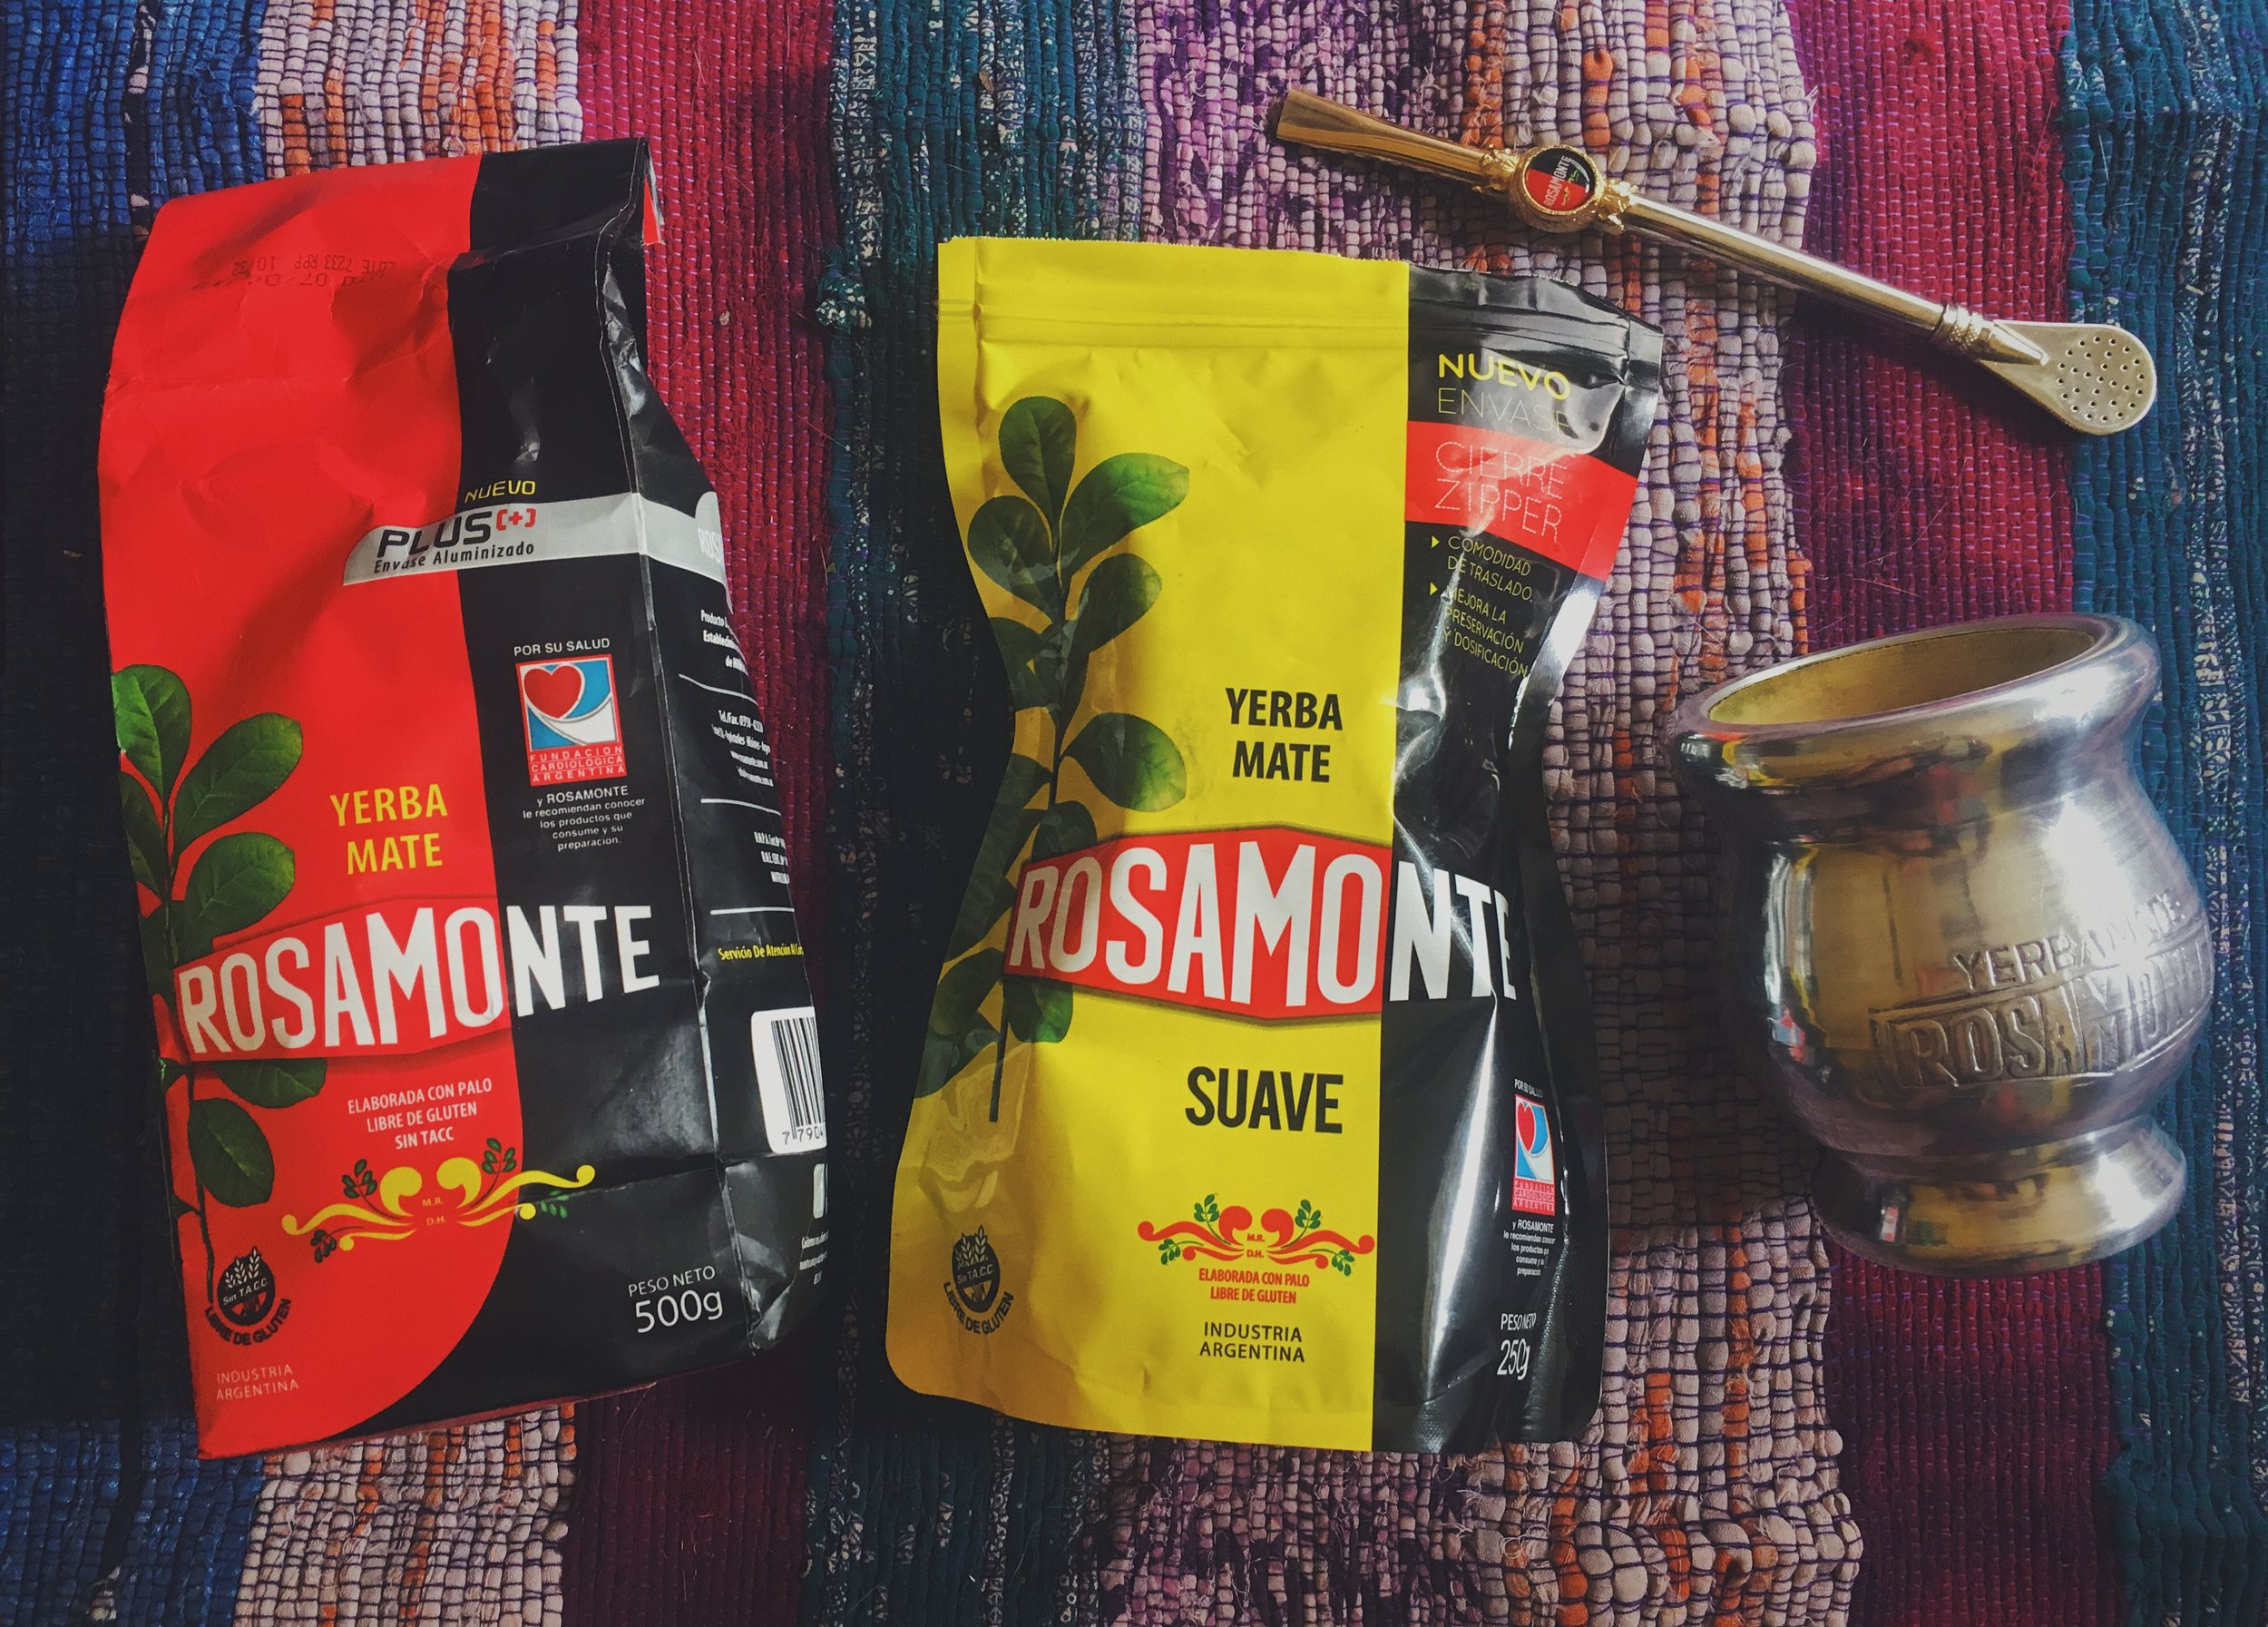 Thanks for the  Roamonte Plus Traditional ,  Rosmonte Suave ,   Wooden Rosamonte Cup    and    19cm Rosamonte bombilla   !